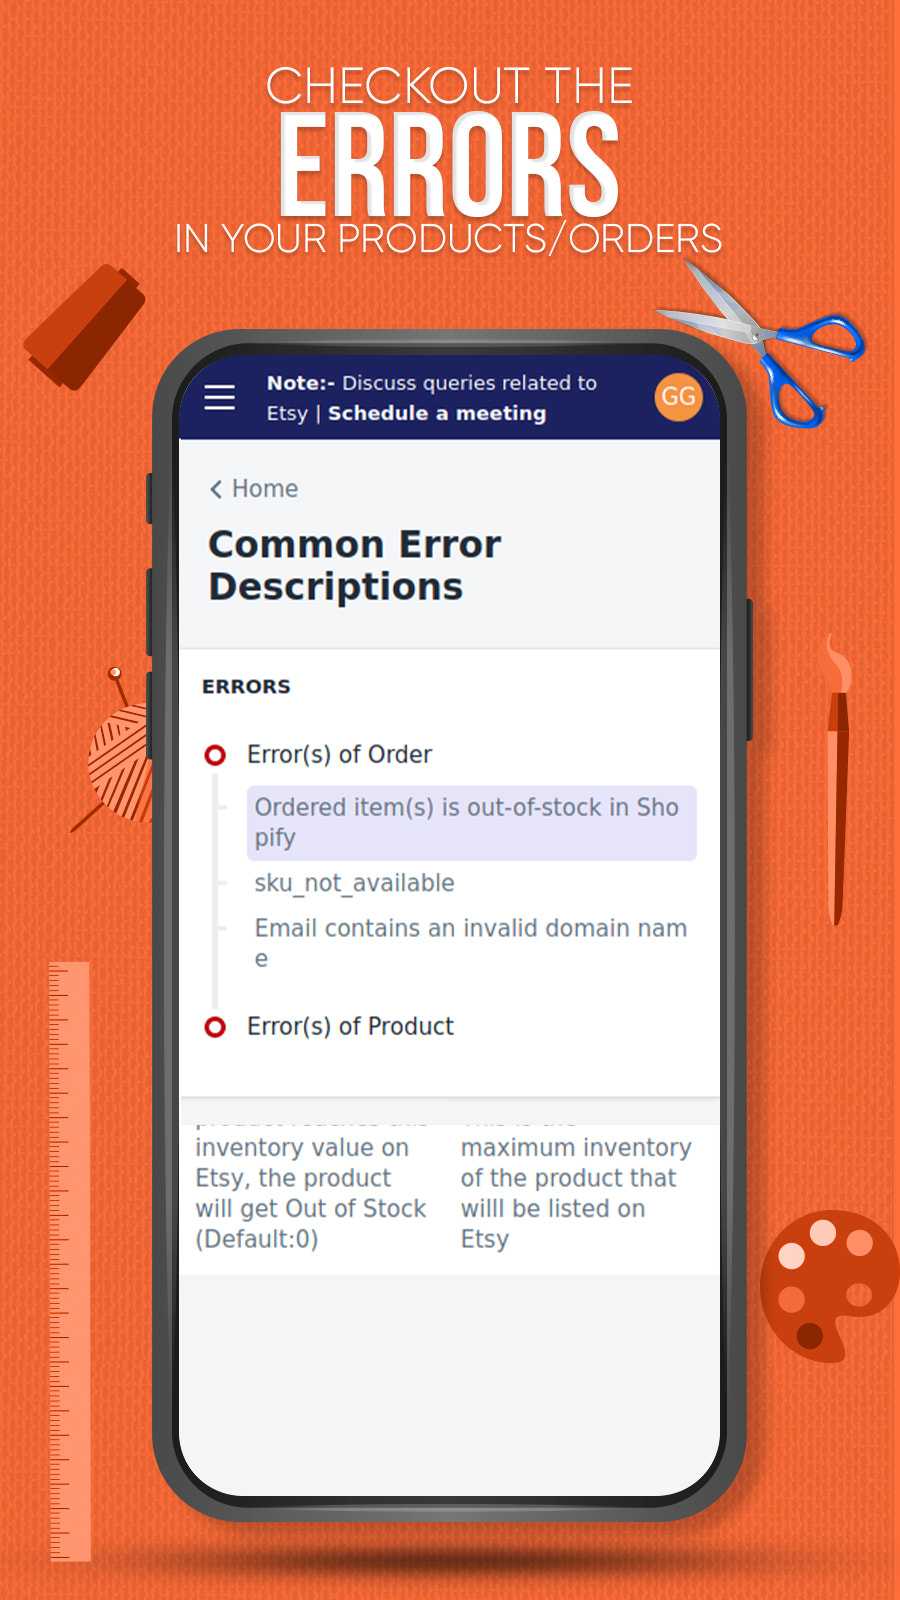 Check the errors in your products and orders